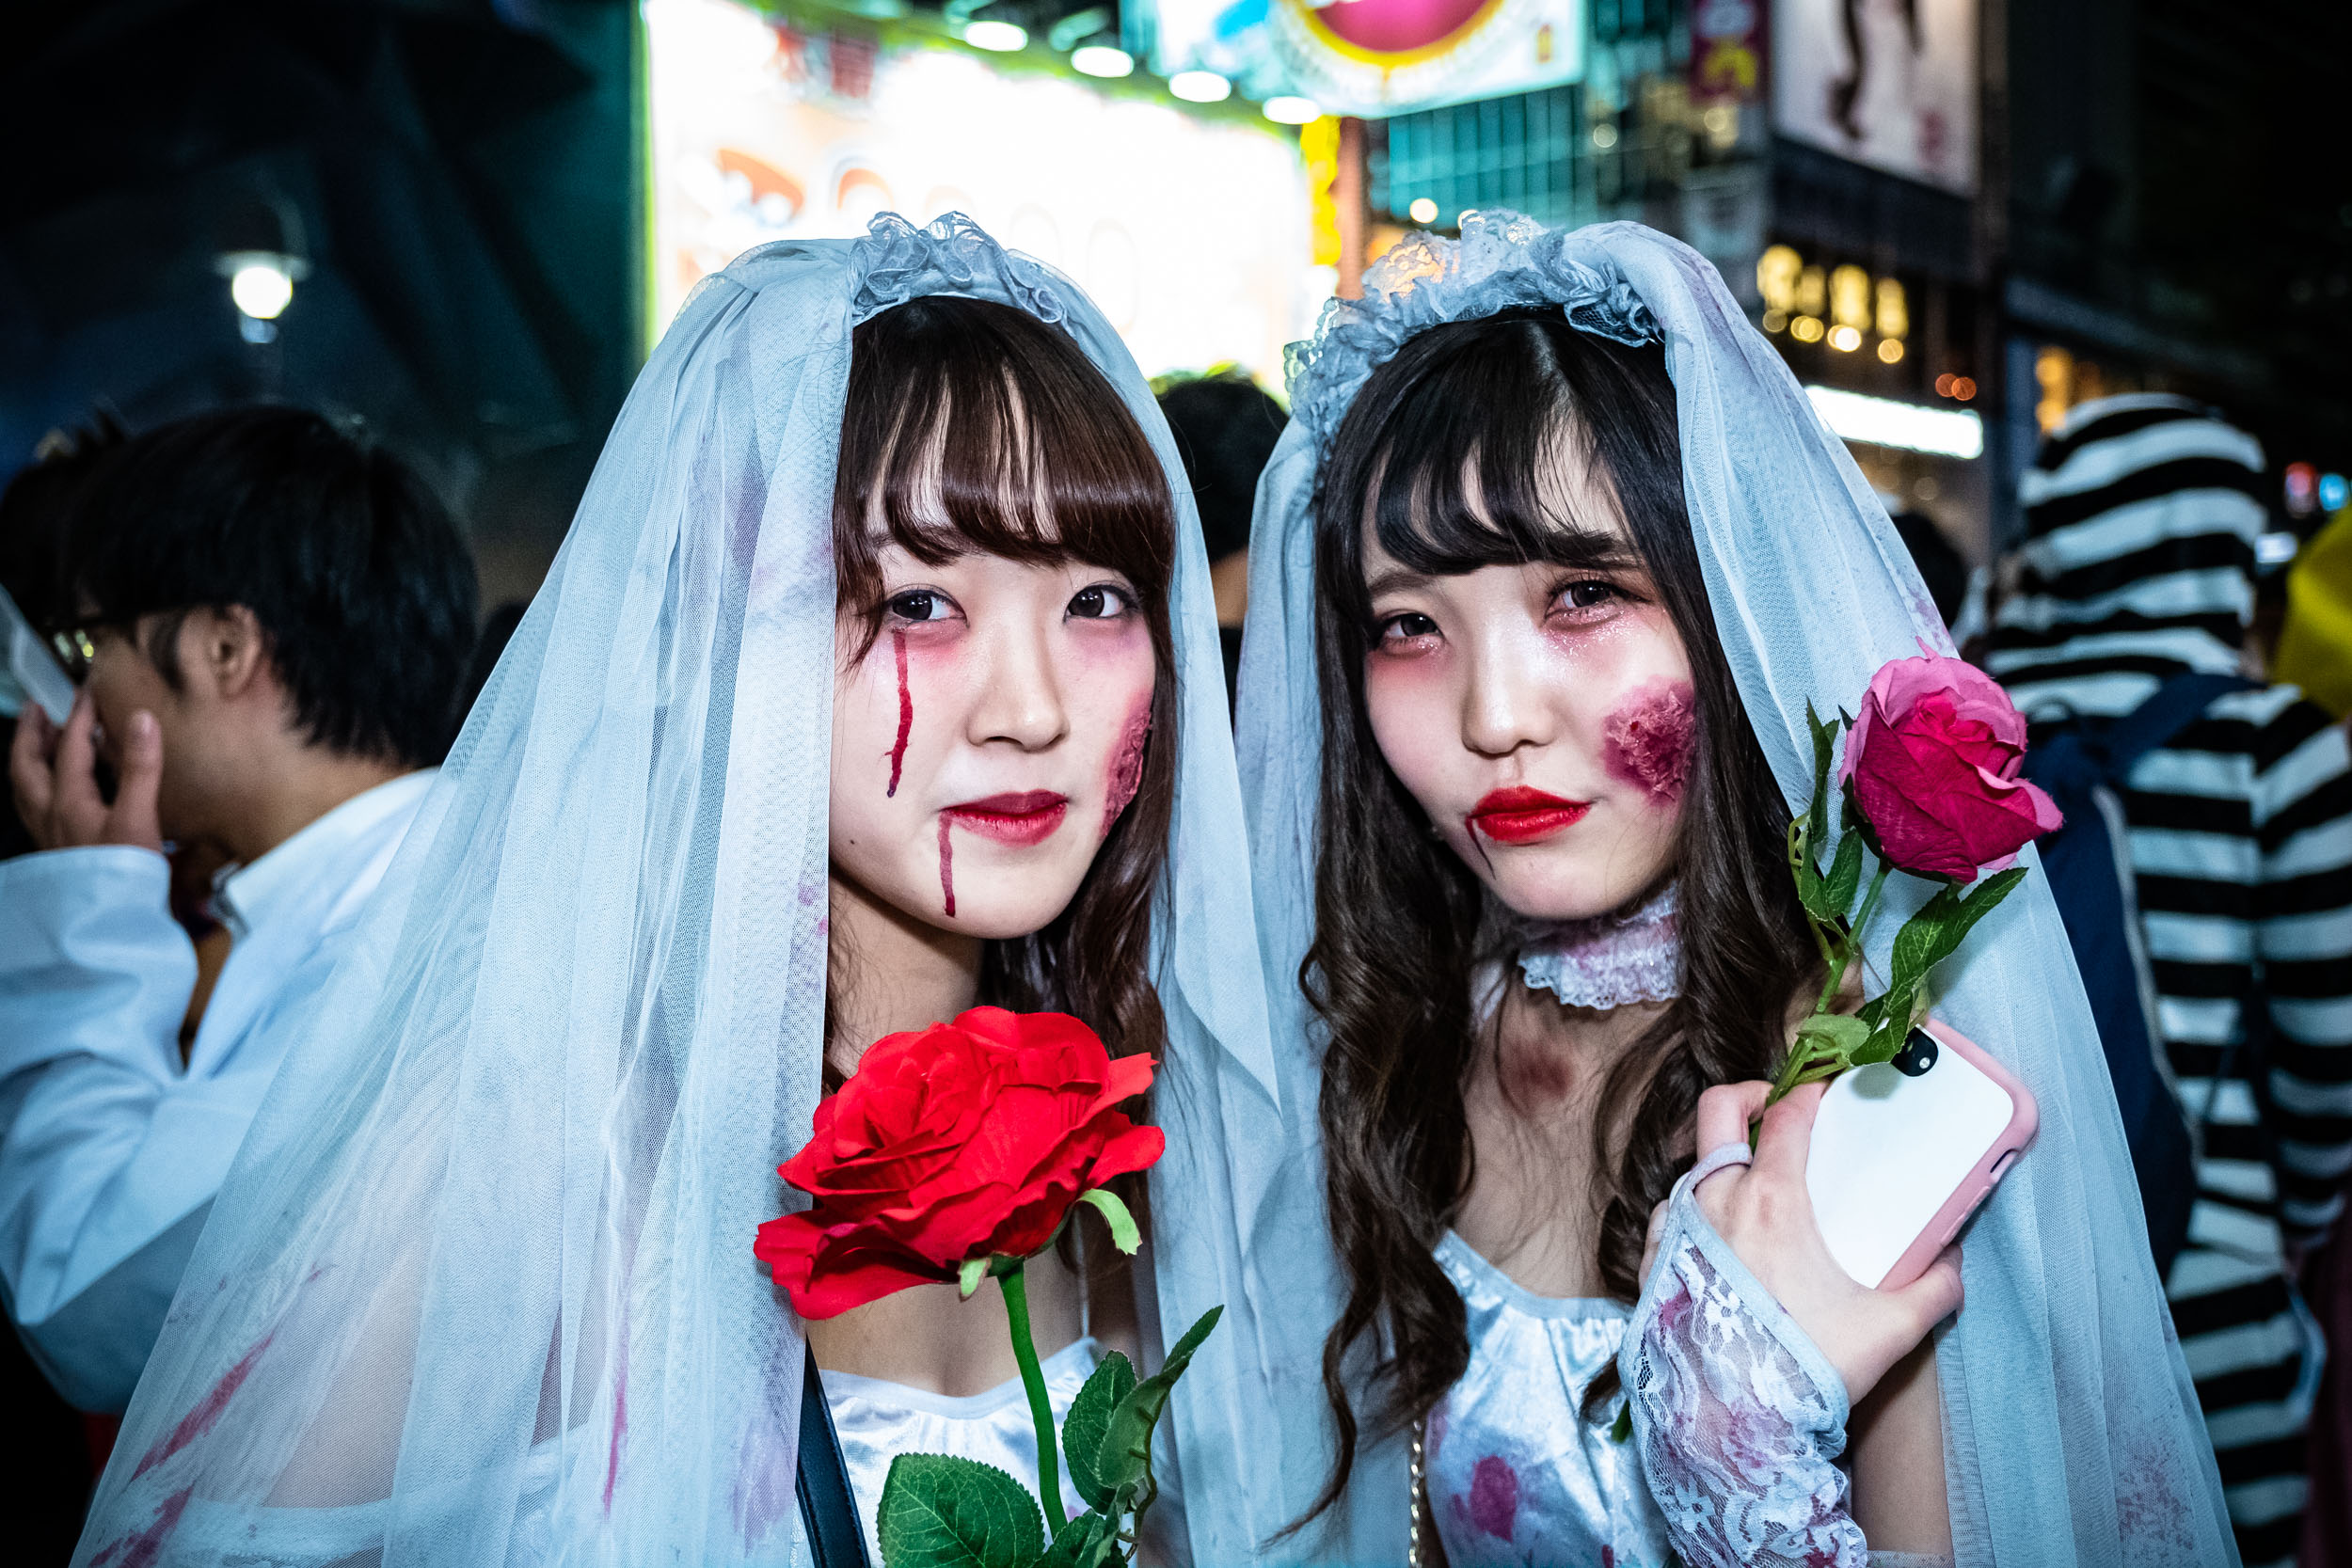 These girls looked like they were dying to get married